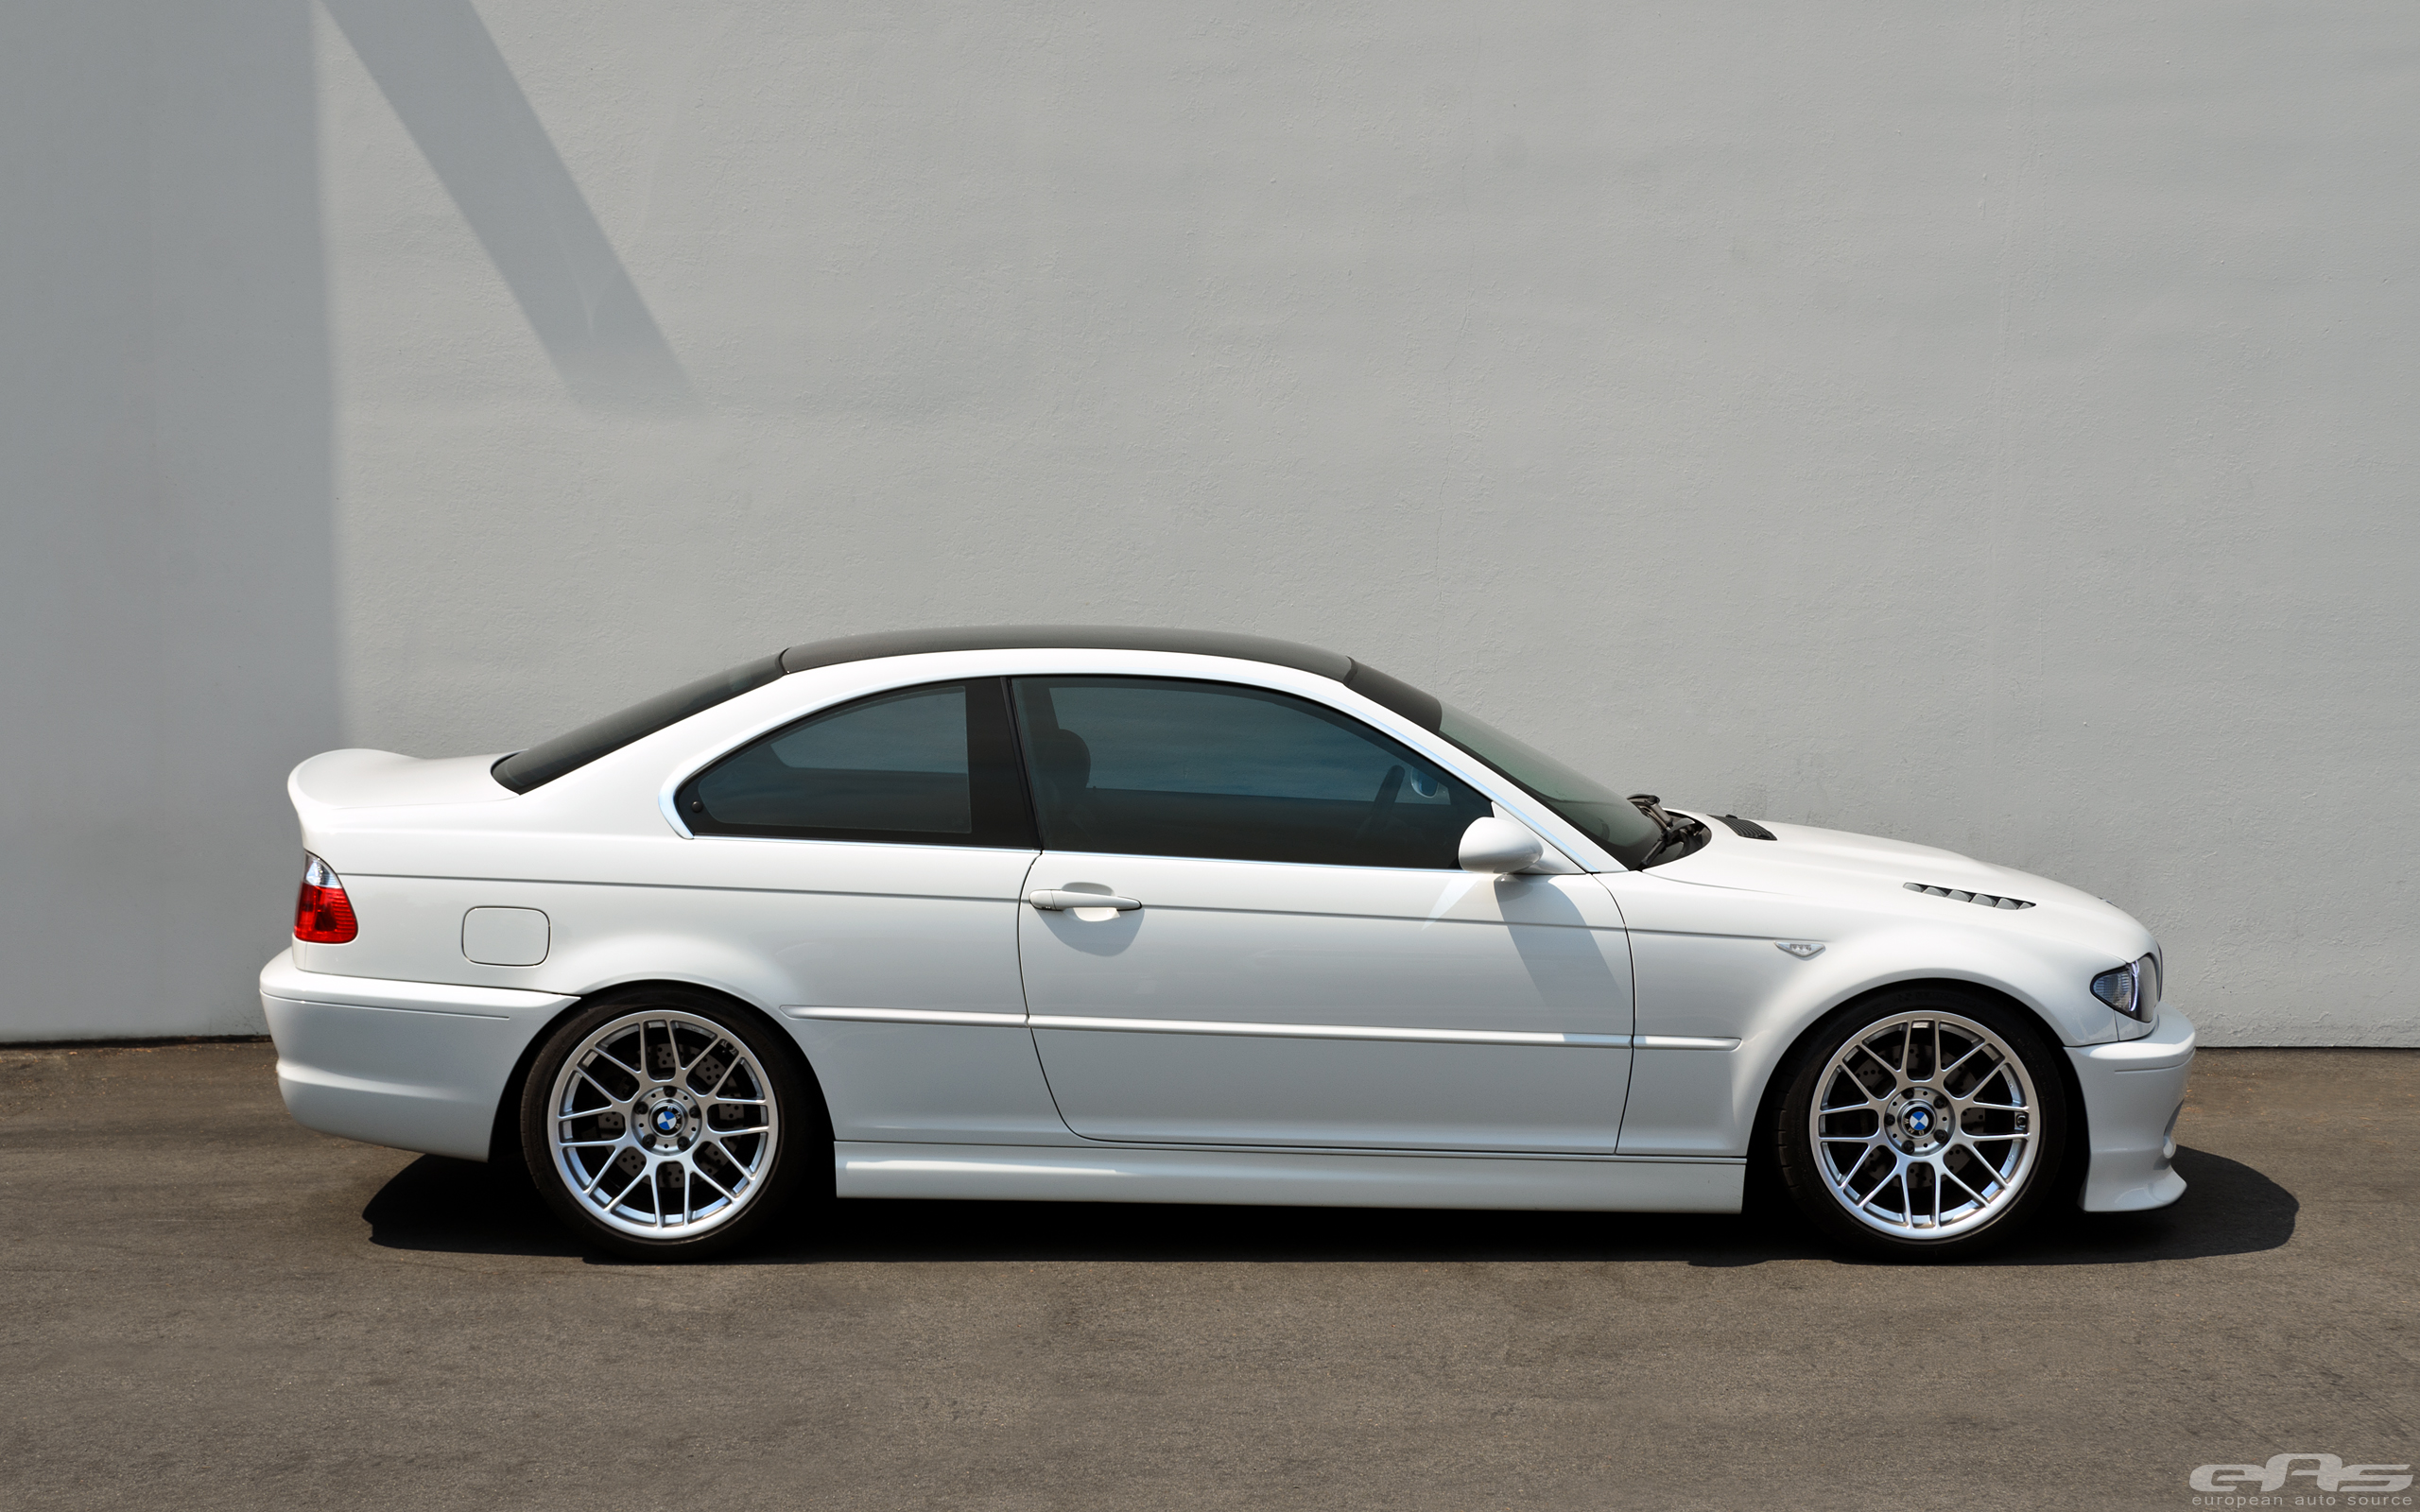 Clean Bmw E46 330ci Has More Than One Ace Up Its Sleeve